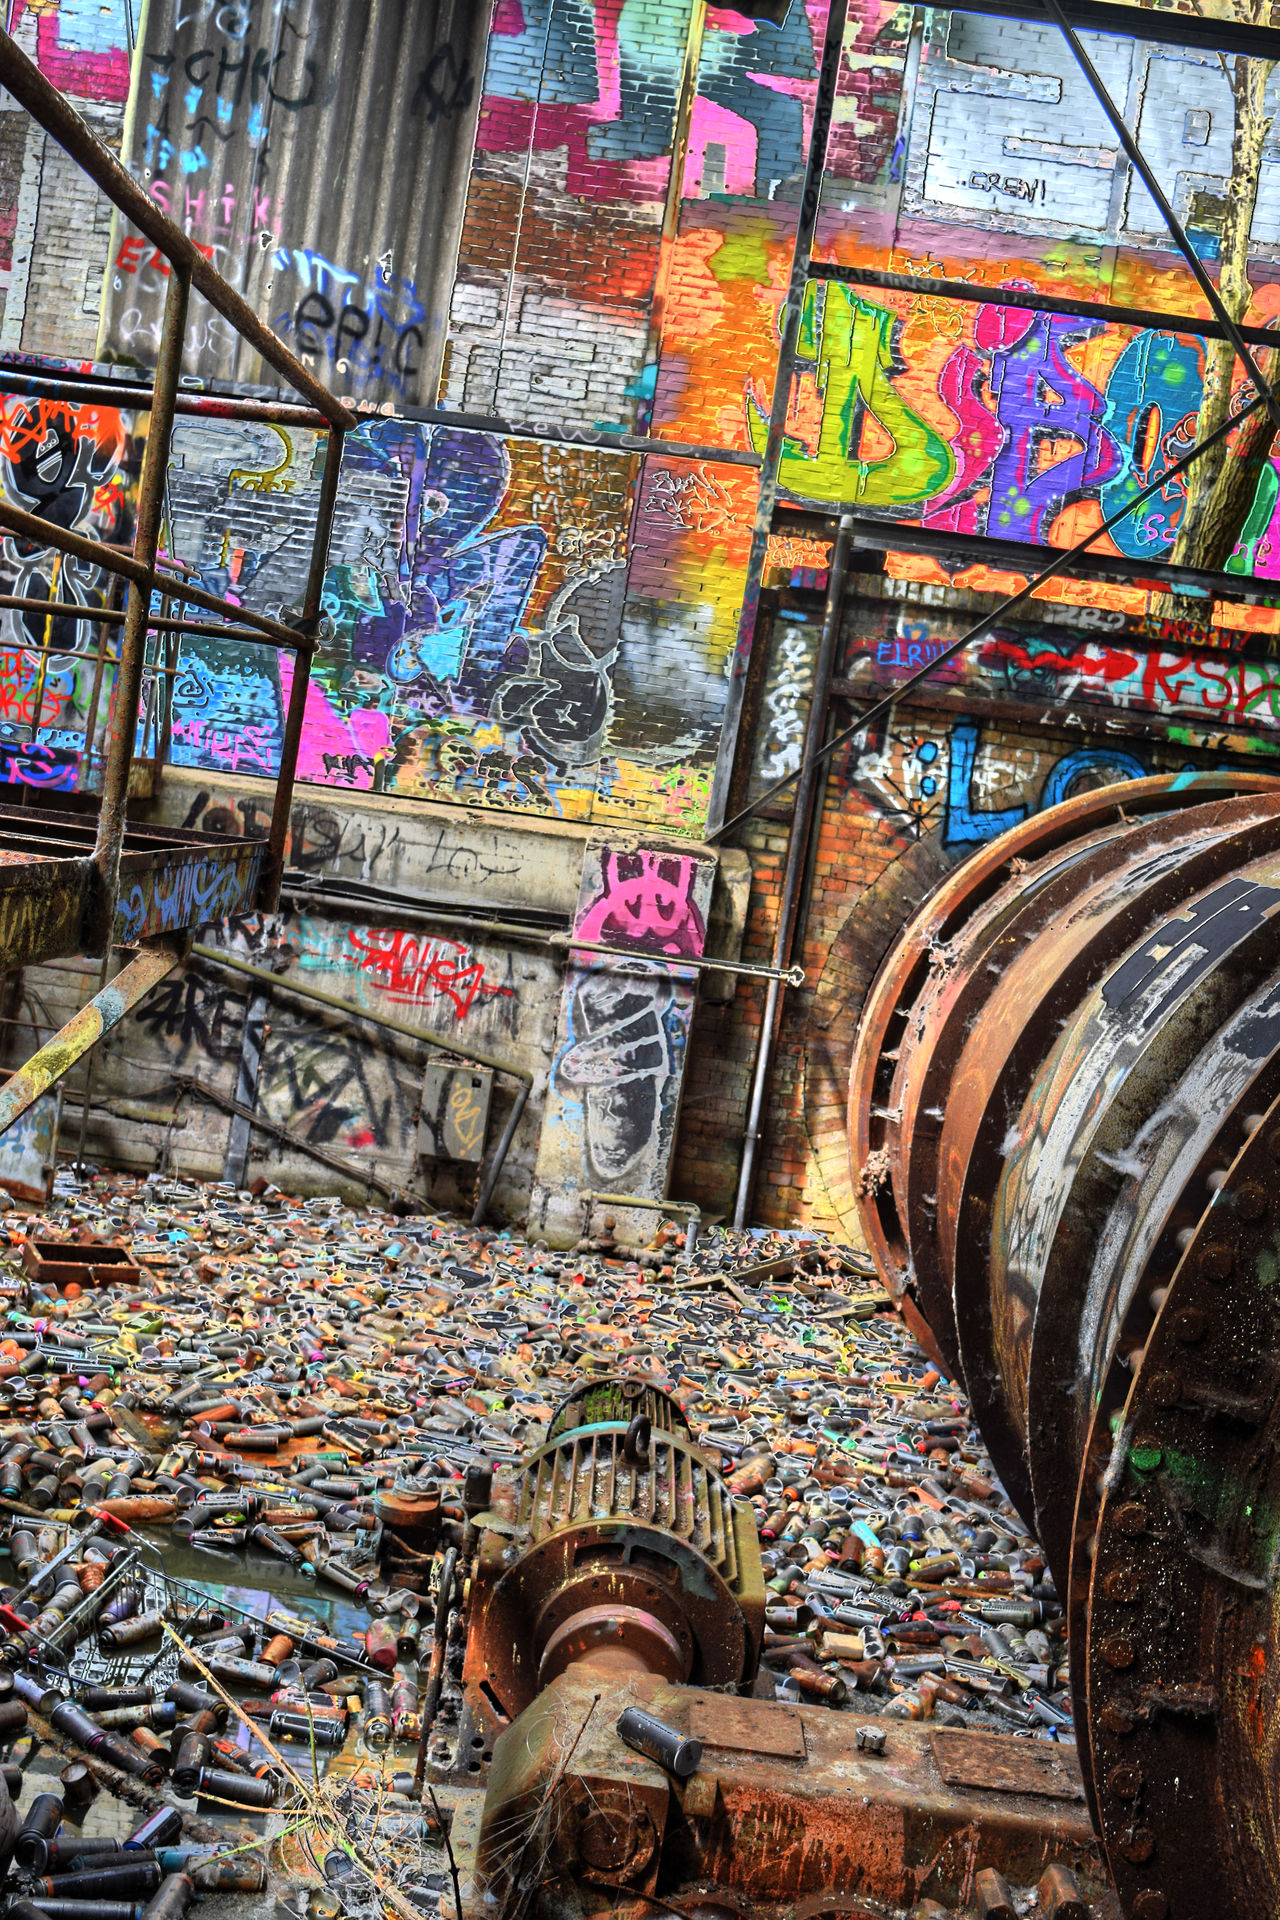 Urban Multi Colored Abundance Full Frame Indoors  Large Group Of Objects No People Stack Variation Backgrounds Choice Day Close-up Grafitti Graffiti Wall Müllverbrennungsanlage Hdr Edit HDR HDRphoto Hdr_lovers Hdrimage Hdrmania Hdrzone Hdr_pics